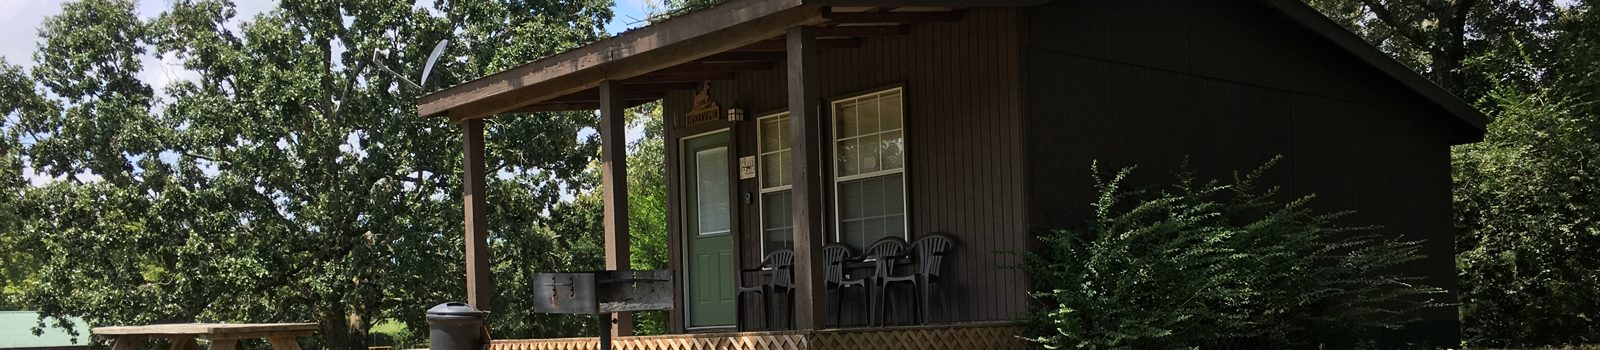 Hanson's Camp RV & Cabins